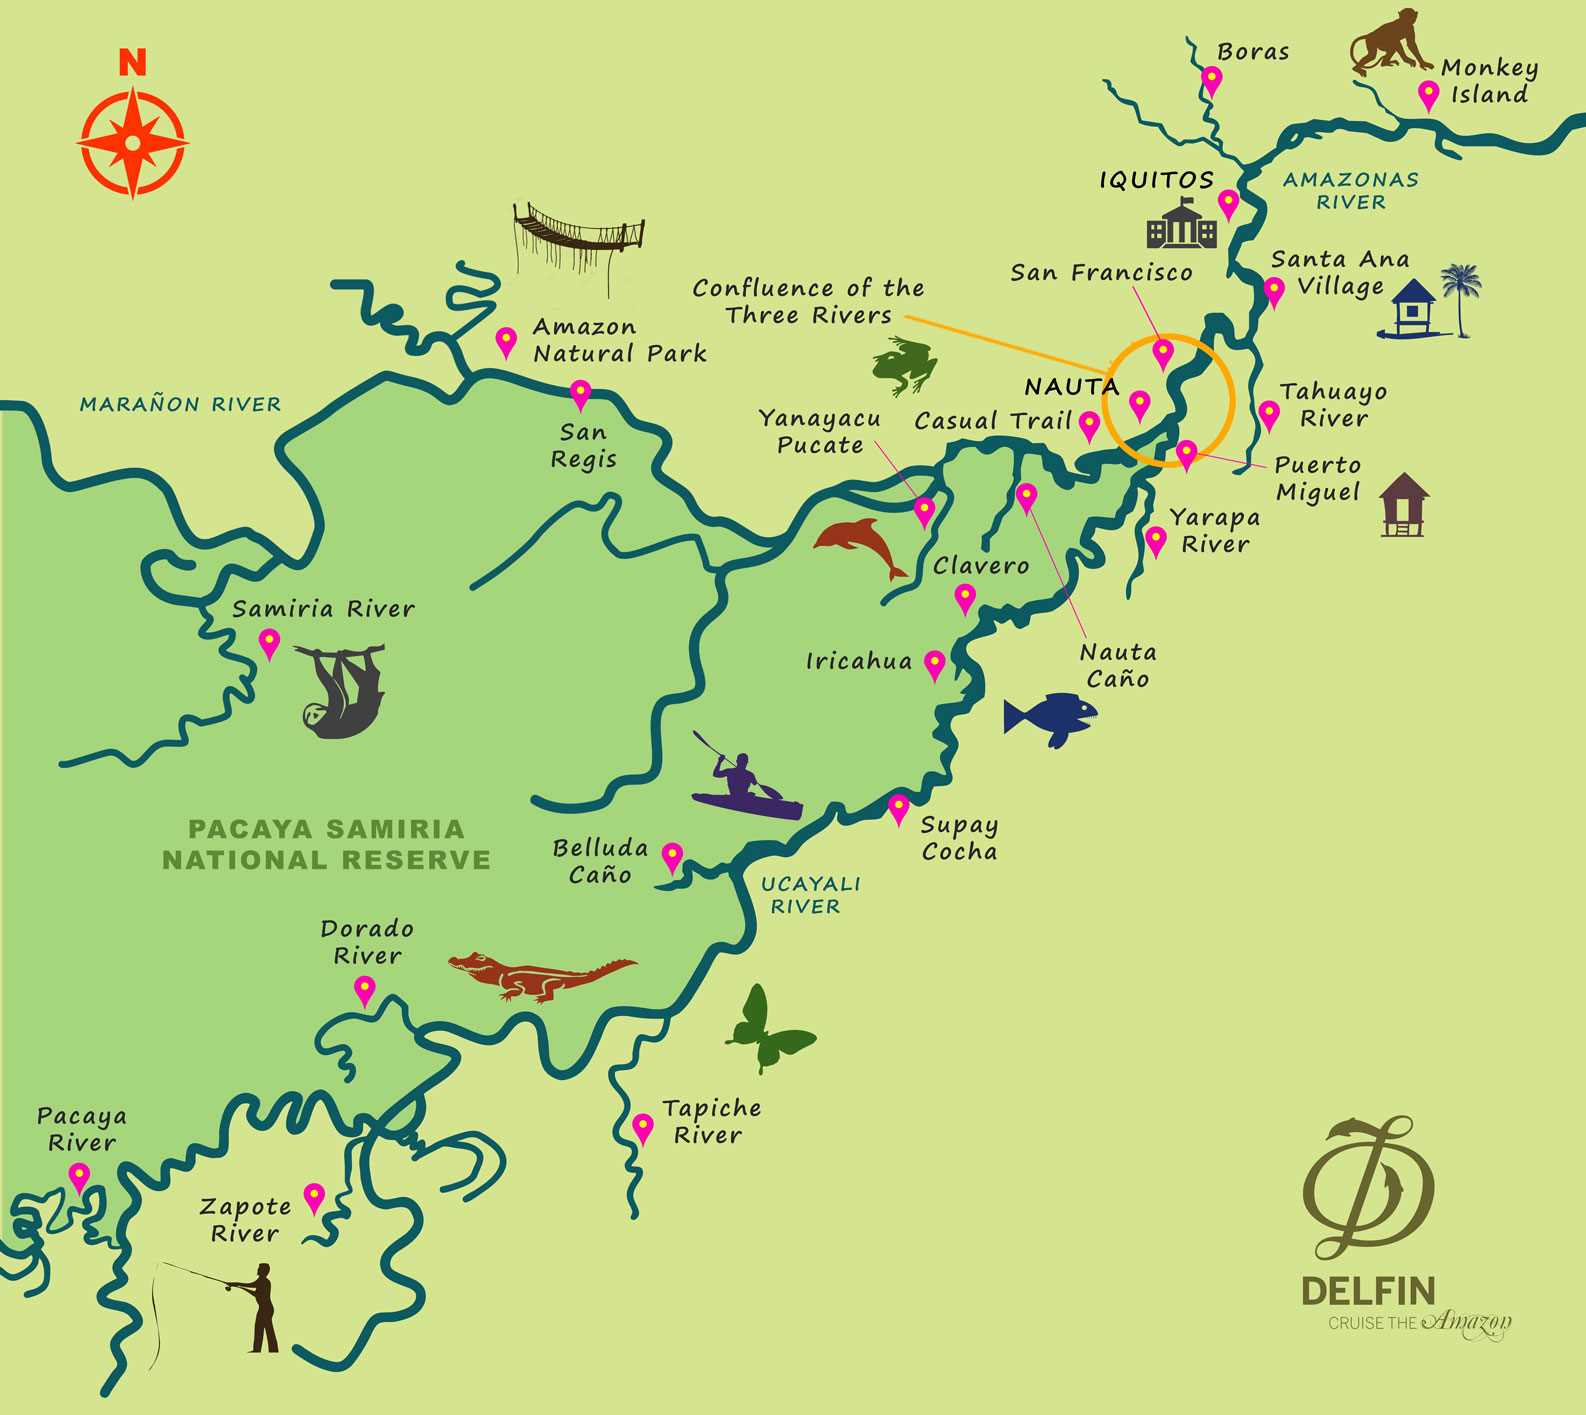 Map for Amazon River Cruise (5 days) Delfin III